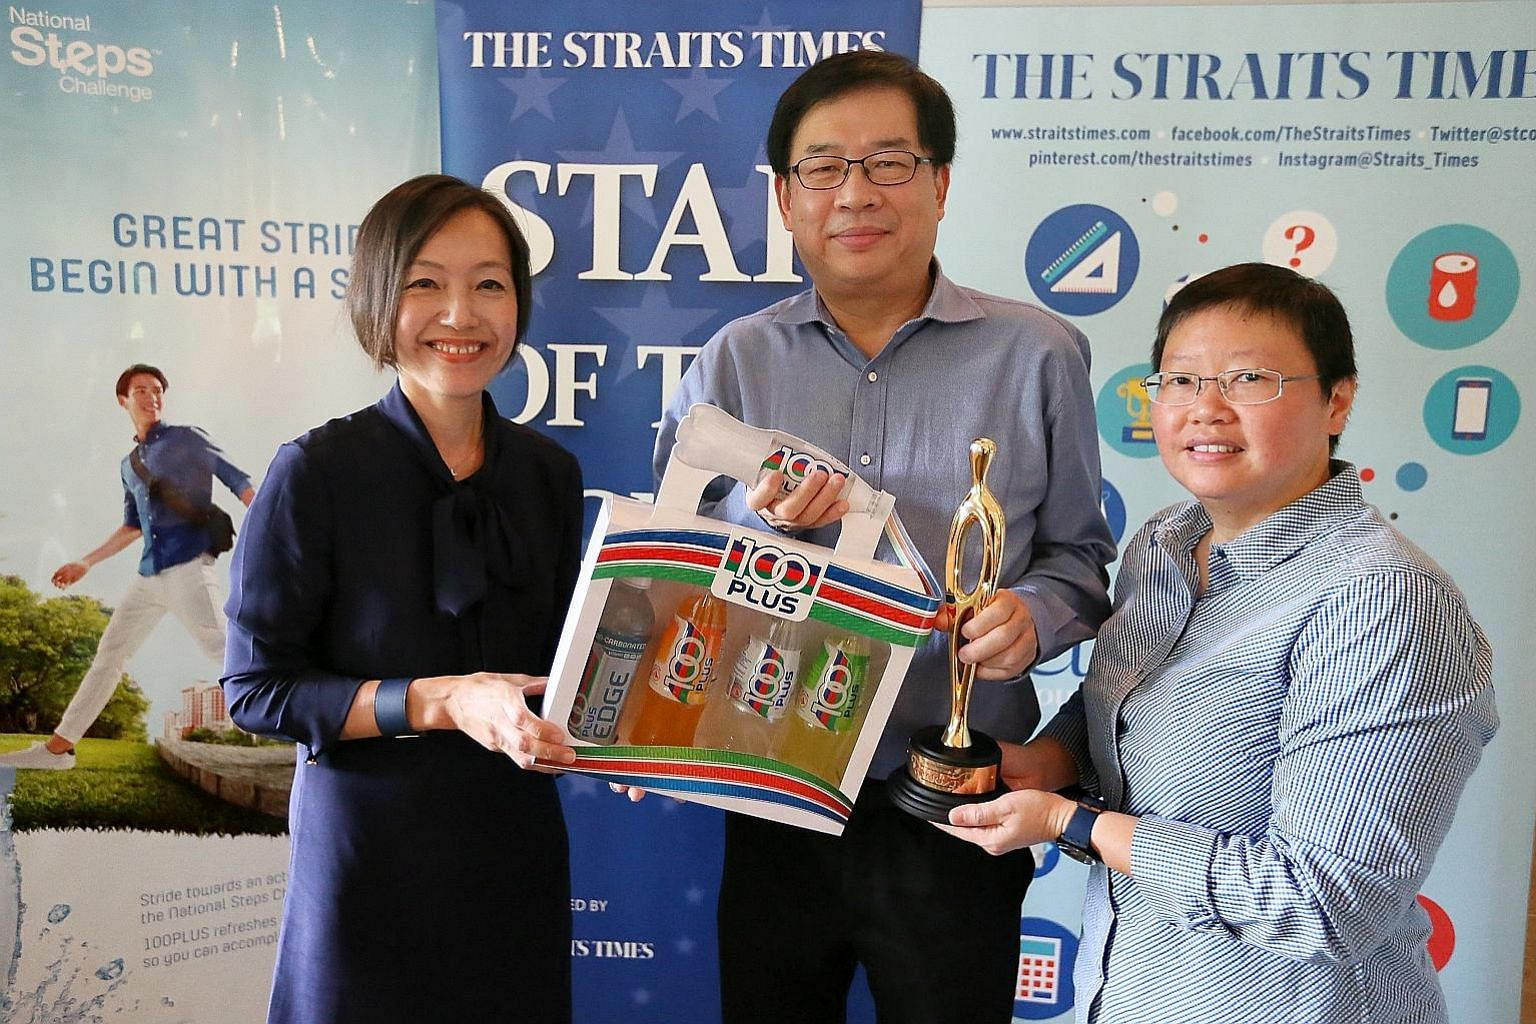 Cuesports Singapore president Christopher Chuah receiving the ST Star of the Month award for December from Jennifer See (left), general manager of F&N Foods Singapore, and ST sports editor Lee Yulin. He accepted the prize on behalf of Peter Gilchrist